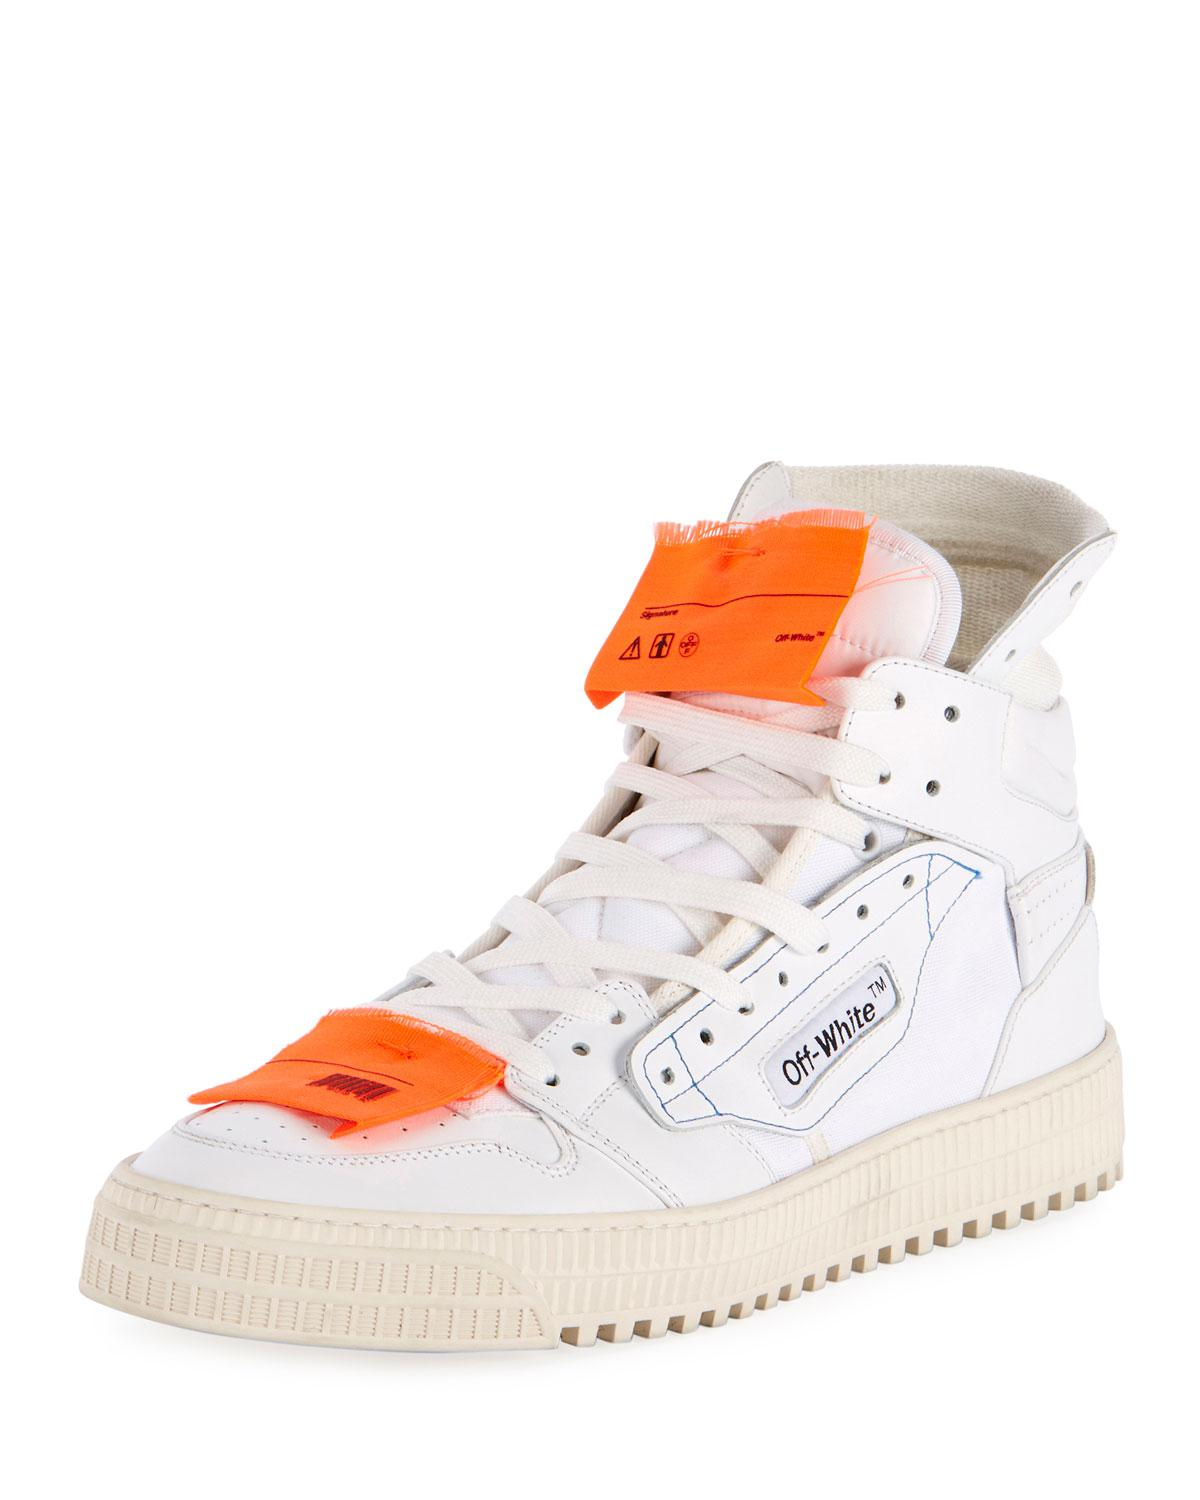 clearance enjoy Off-White c/o Virgil Abloh Mirror Mirror Low-Top Sneakers cheap sale fake get to buy cheap online factory outlet for sale amazing price OhKiO